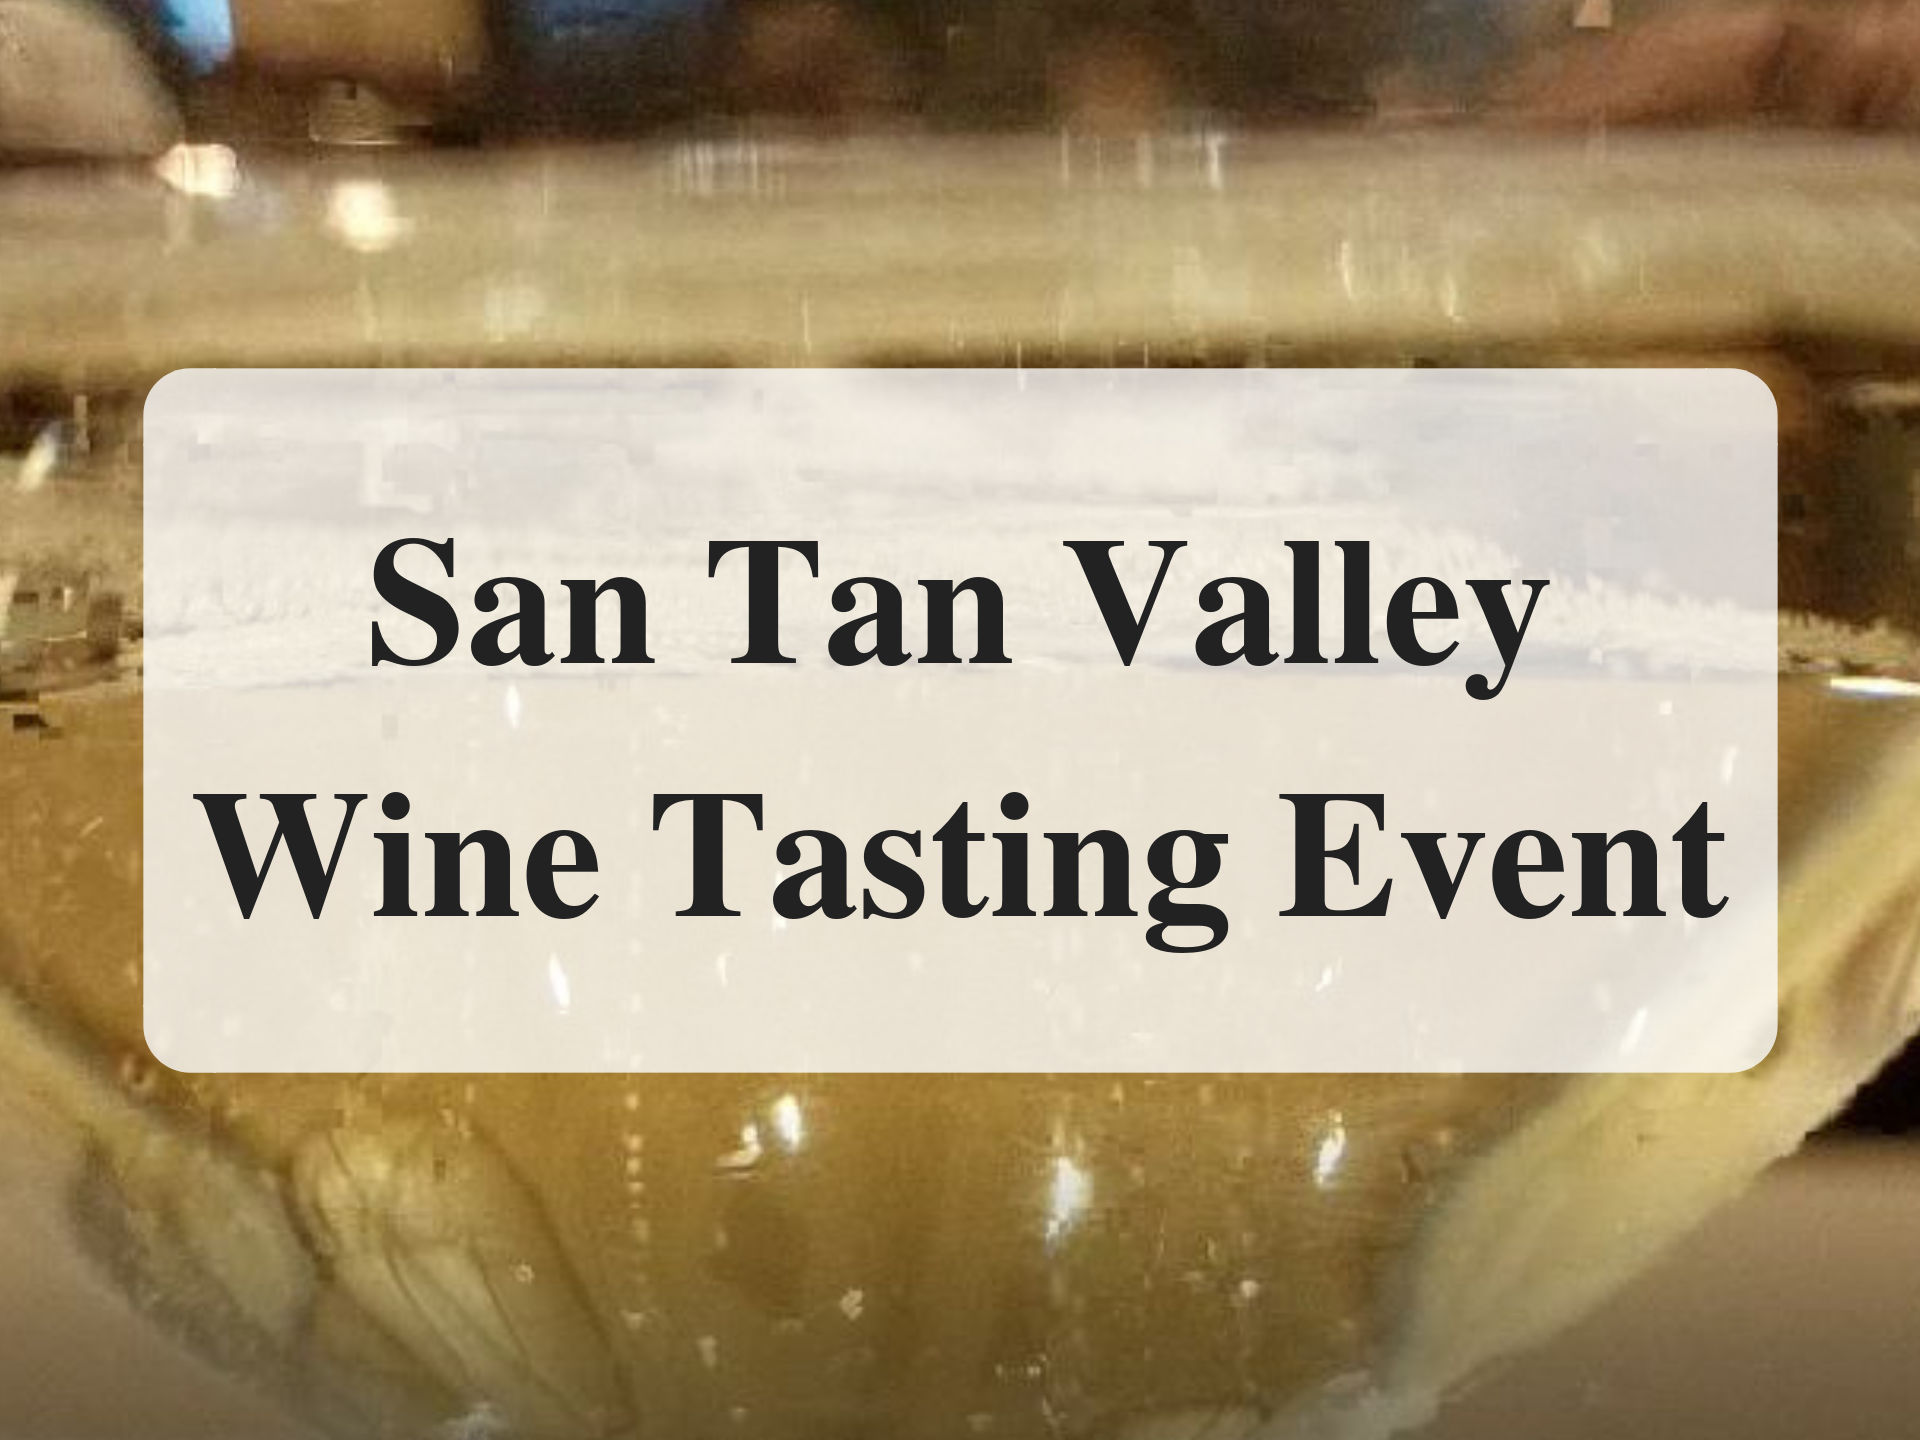 San Tan Valley Wine Tasting Event